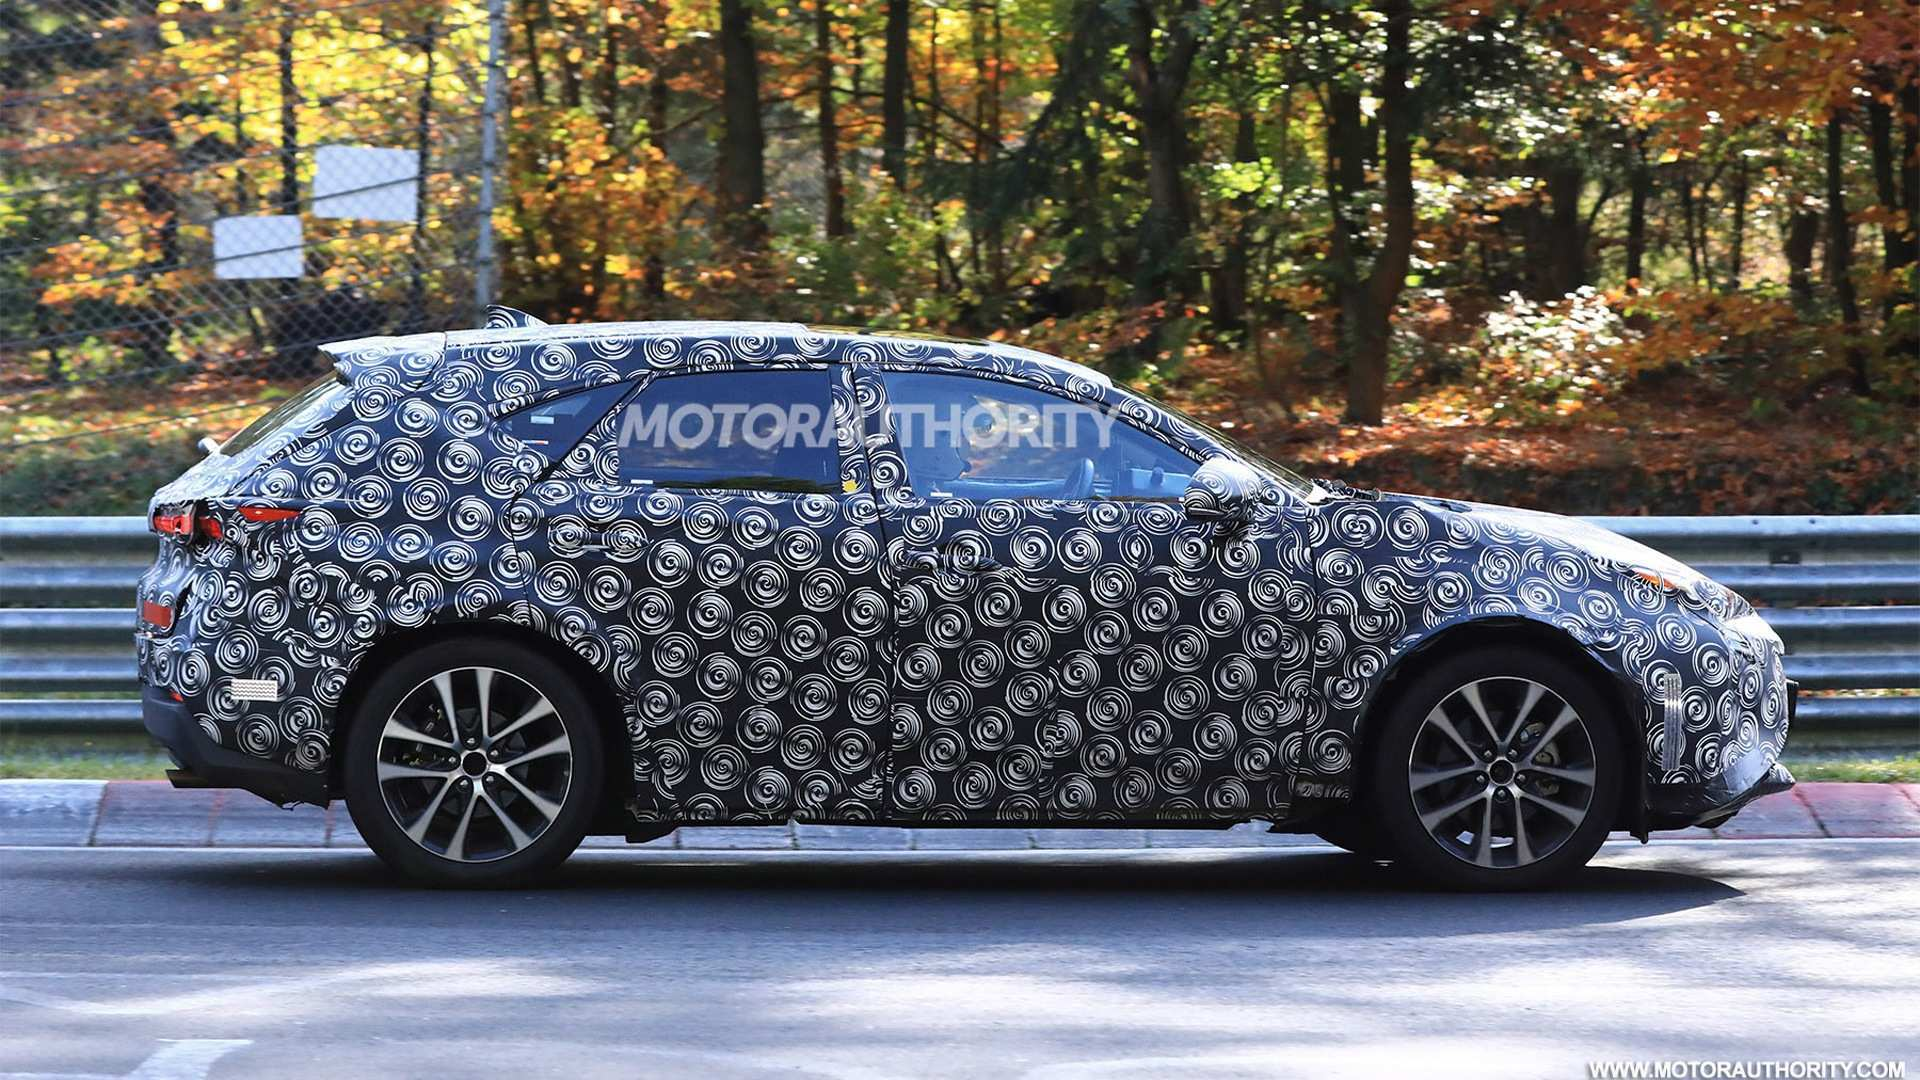 69 All New 2020 Spy Shots Toyota Prius New Model And Performance